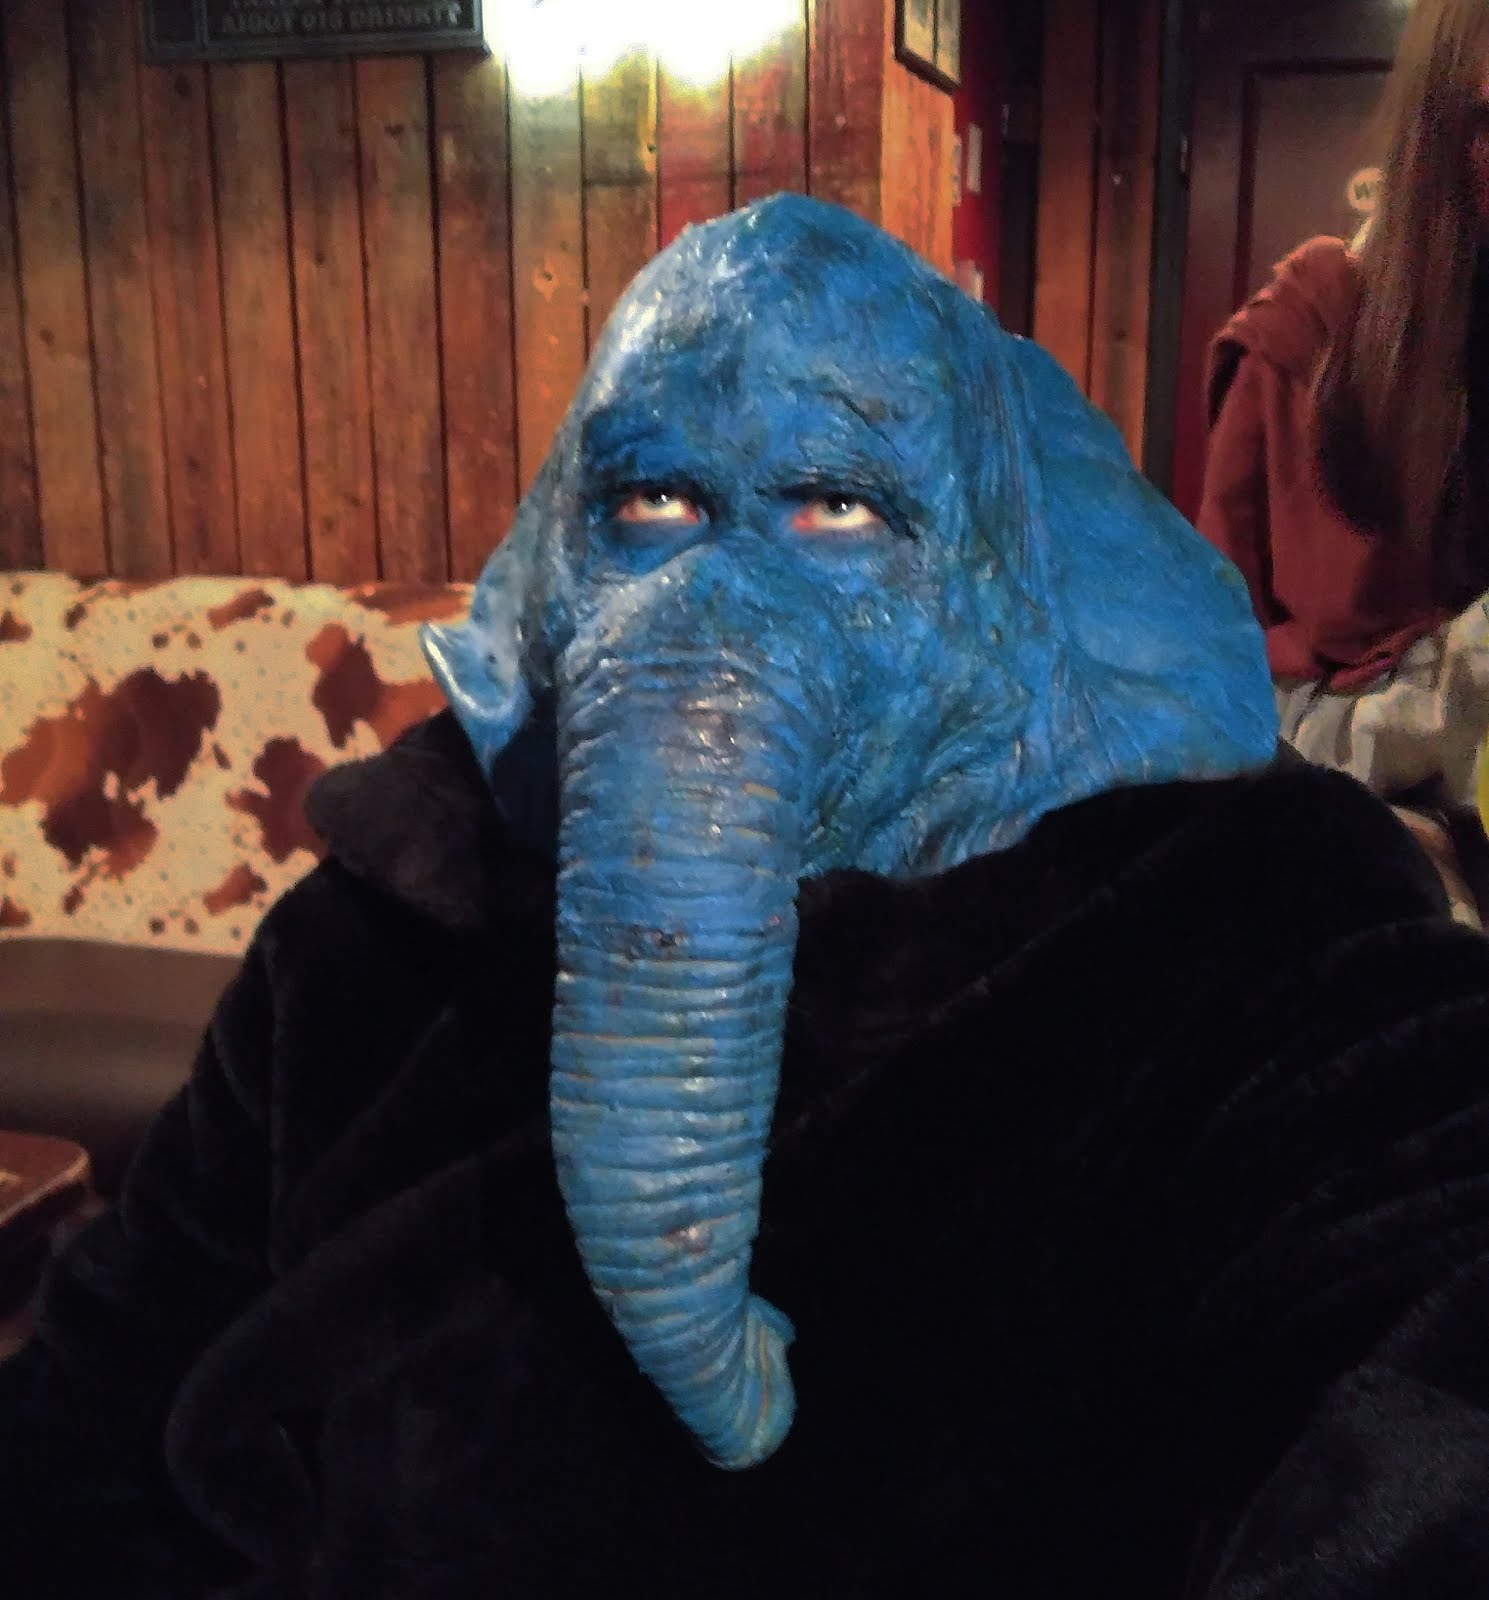 Max Rebo. Search for Luke - Star Wars fan film.